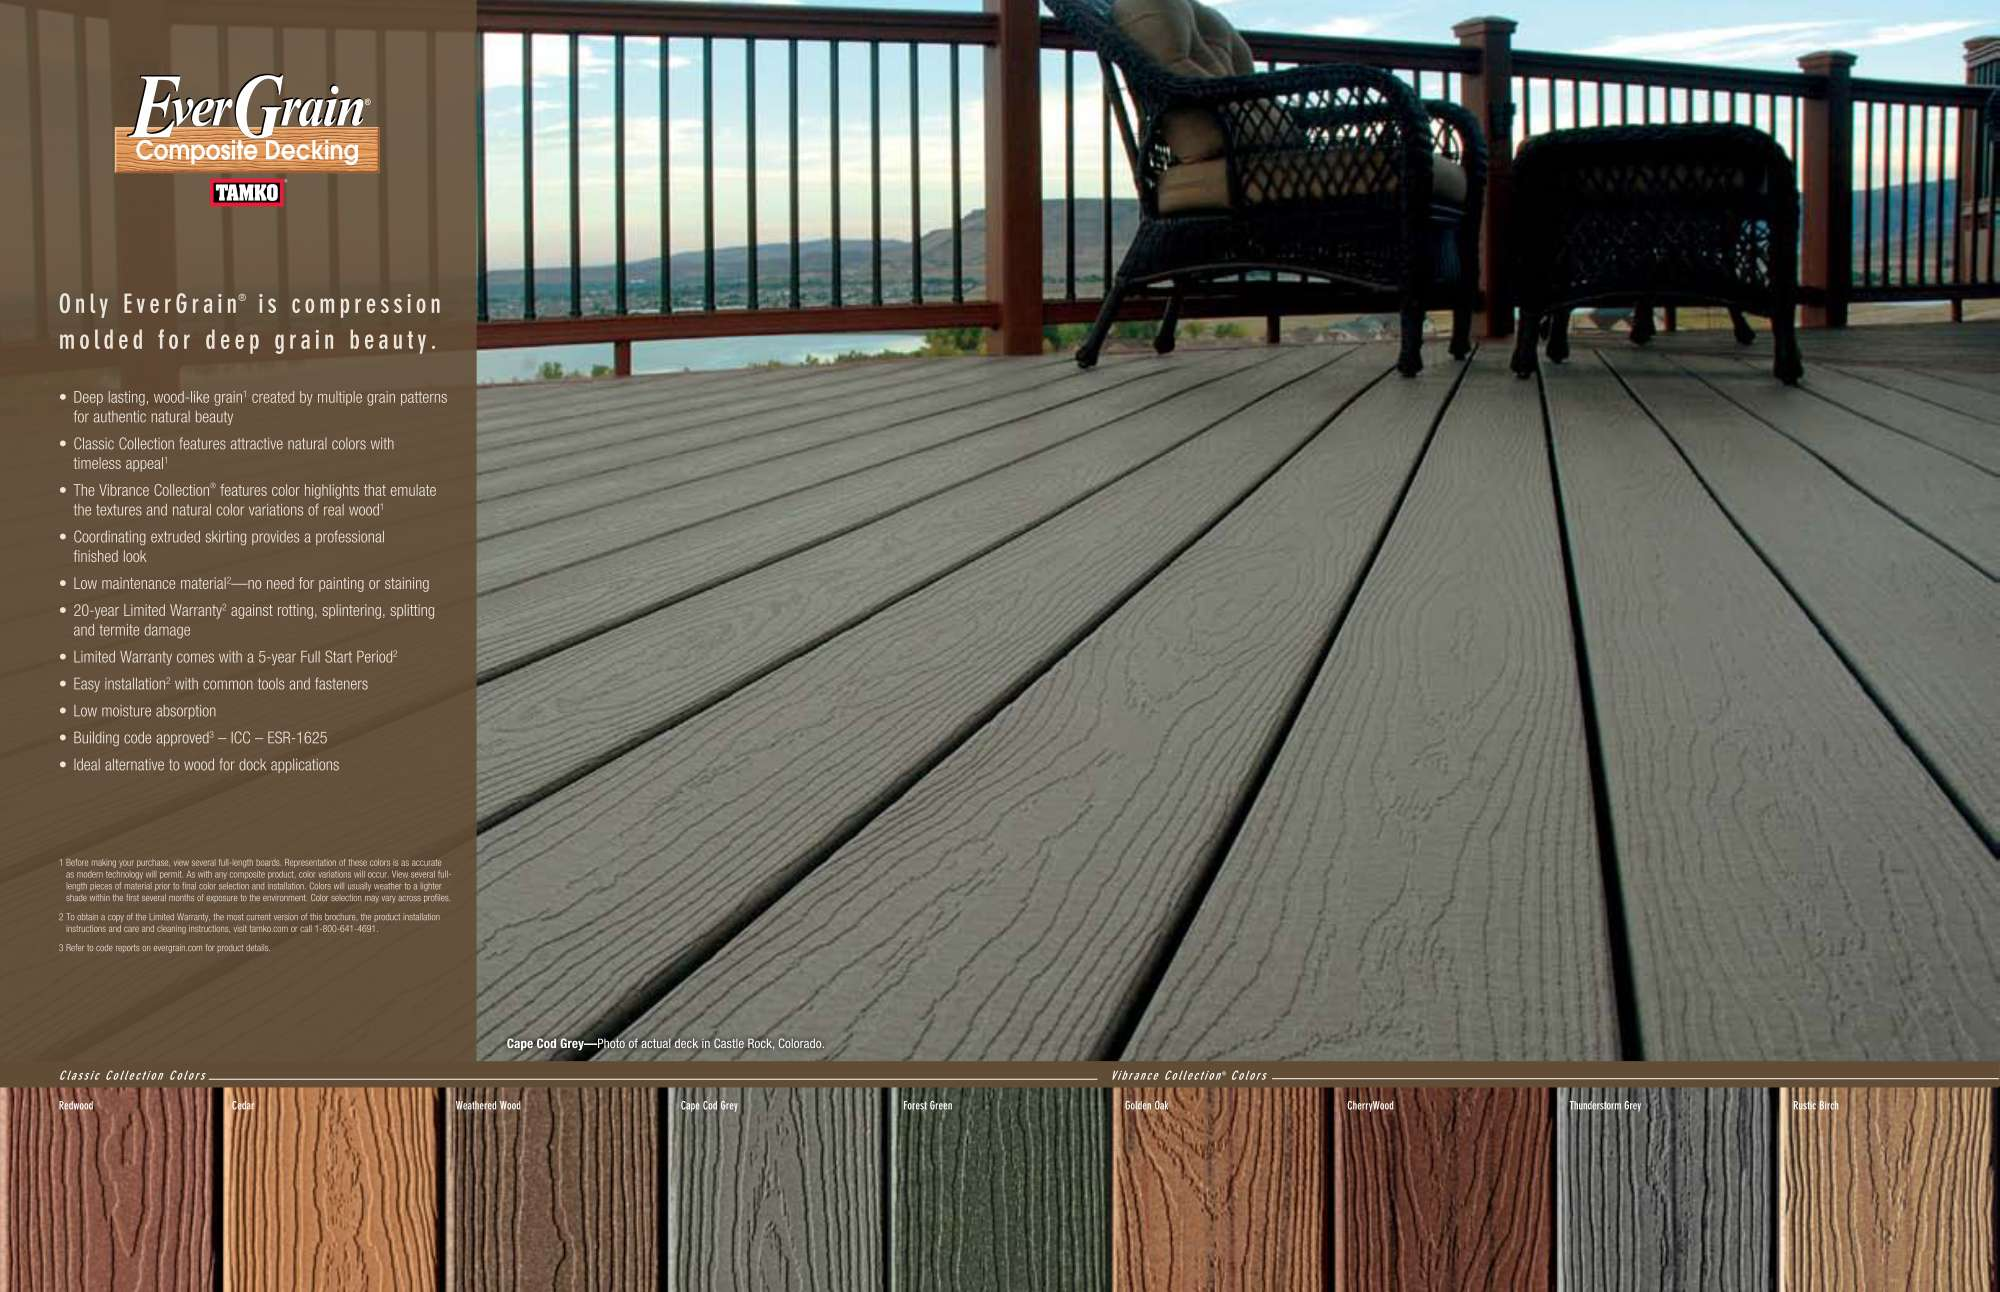 dimgray evergrain decking with brown railing plus rattan sofa for patio decor ideas